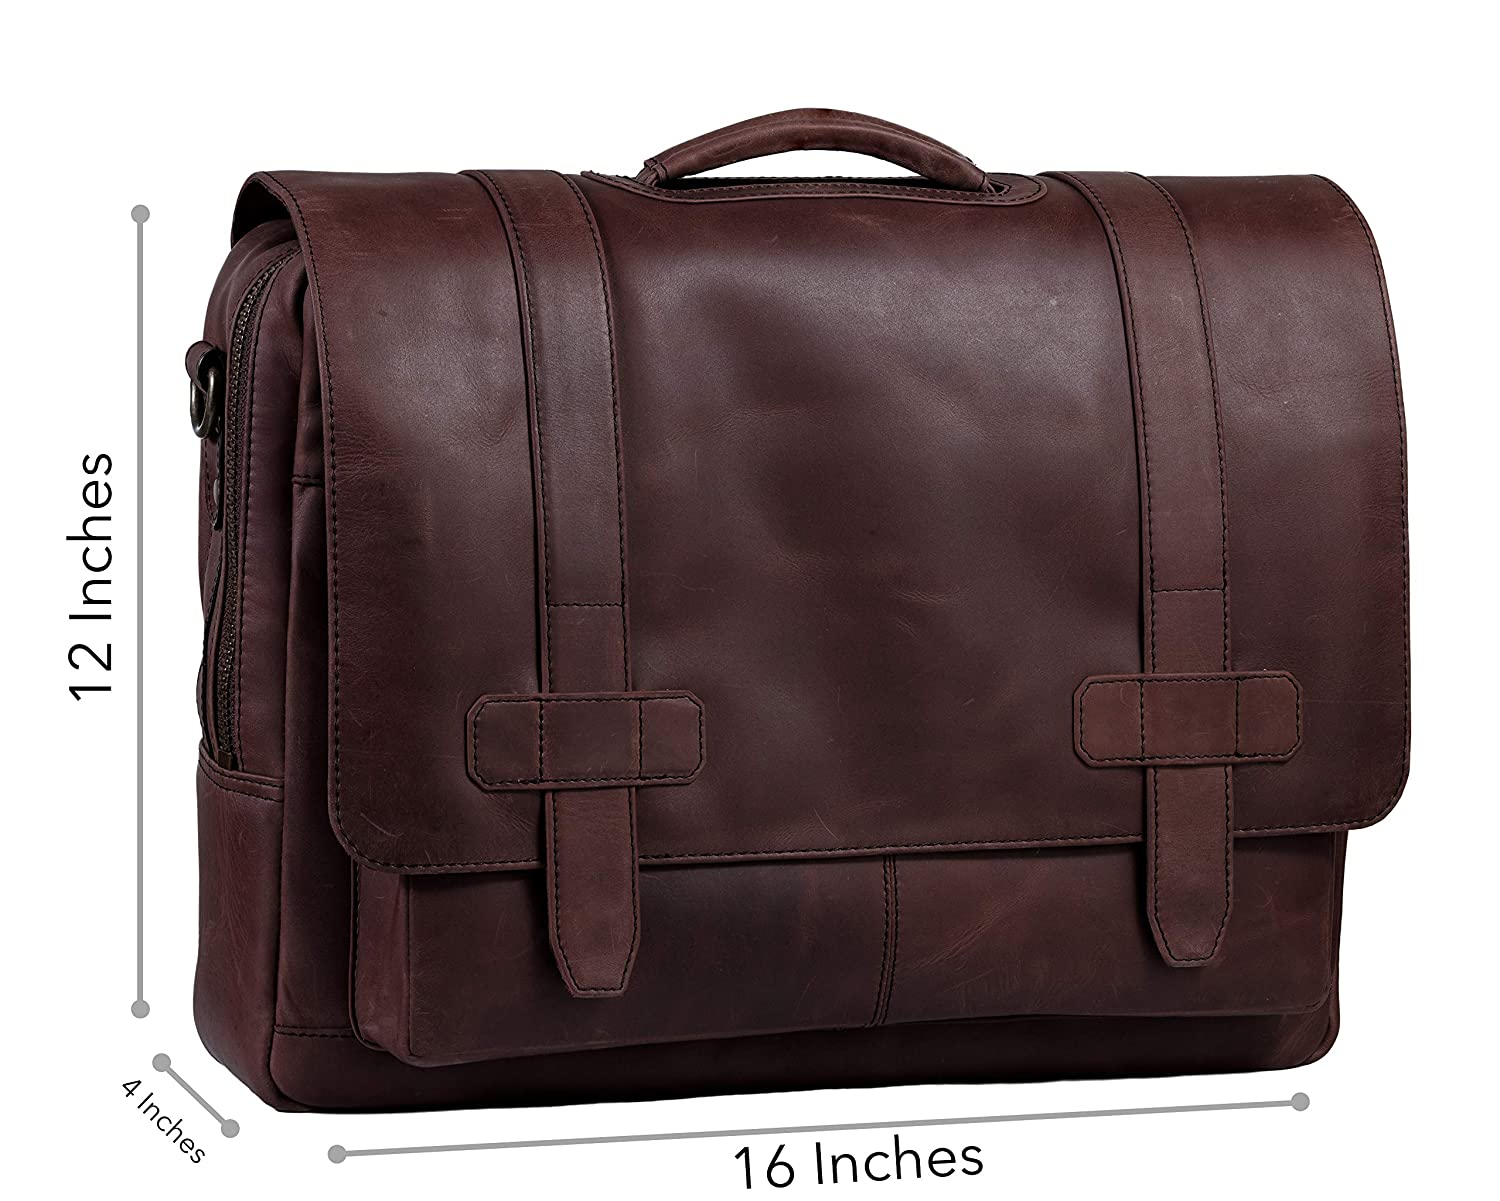 Amazon.com  Full-Grain Leather Messenger Laptop Bag Briefcase for ... 2de32dbc481a9